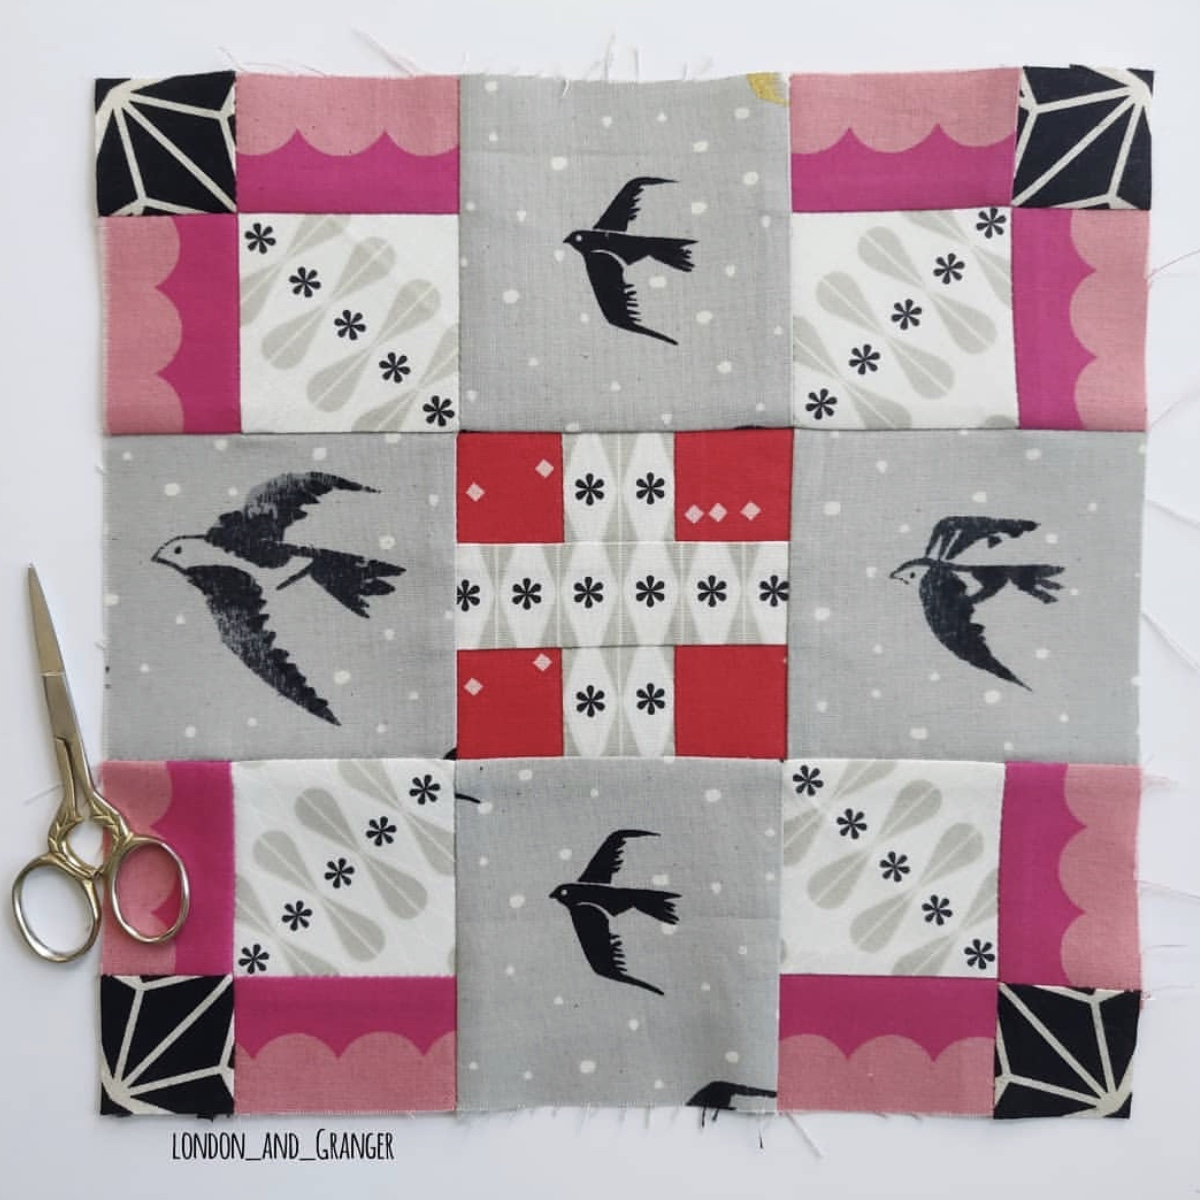 I love the movement  @london_and_granger  has created in this block. I feel like all the birds are flying together away from a snow storm.